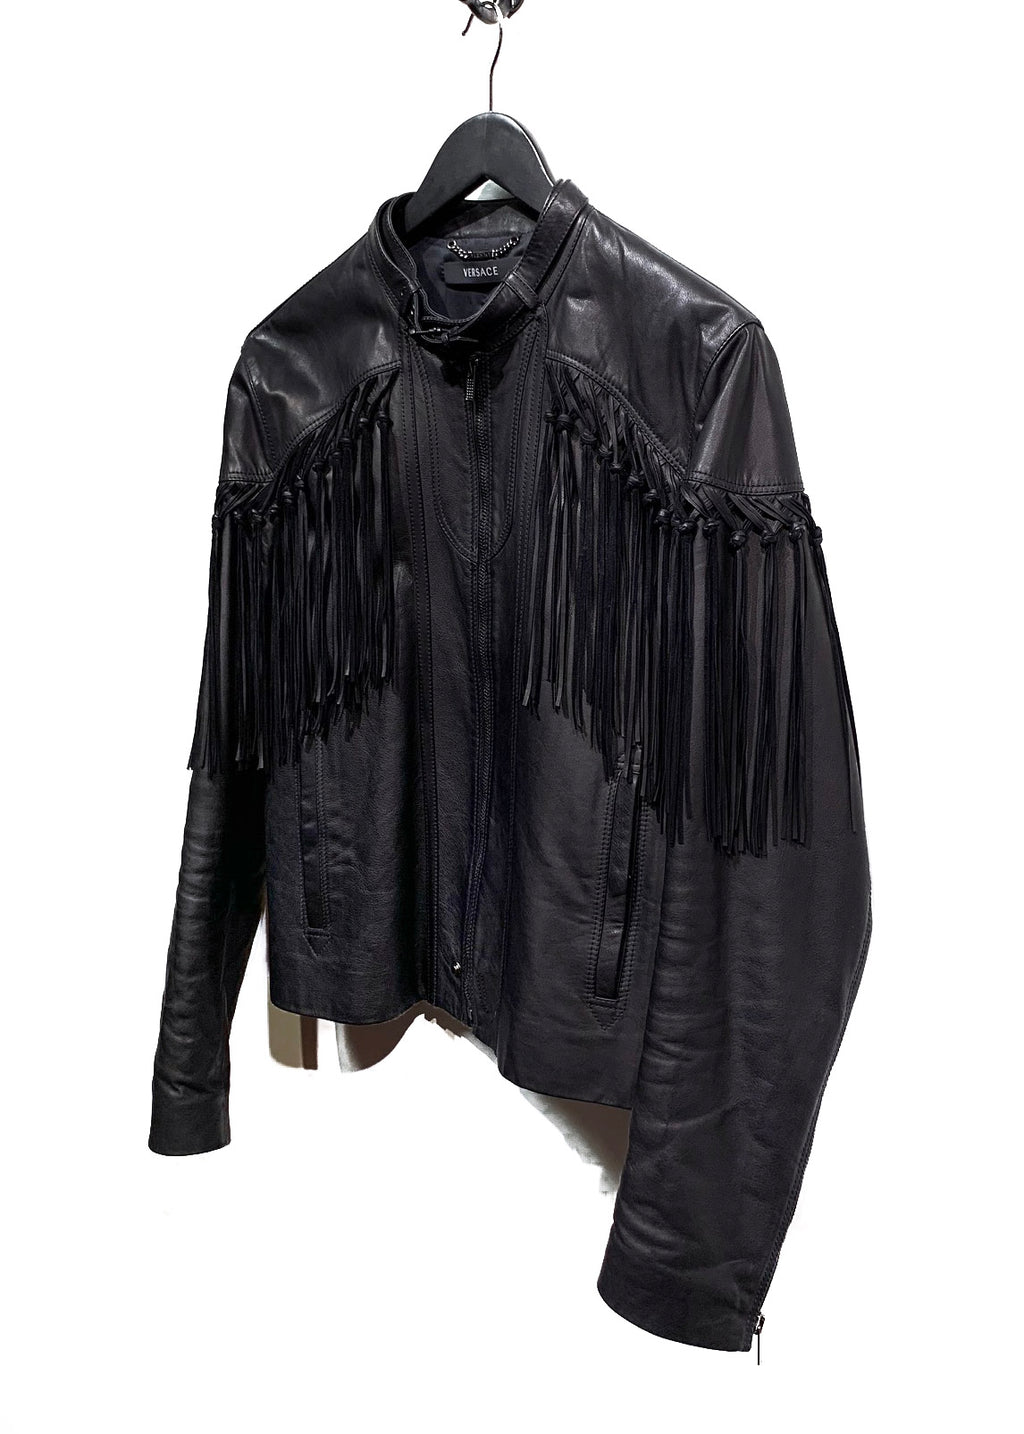 Versace Black Leather Fringed Moto Jacket